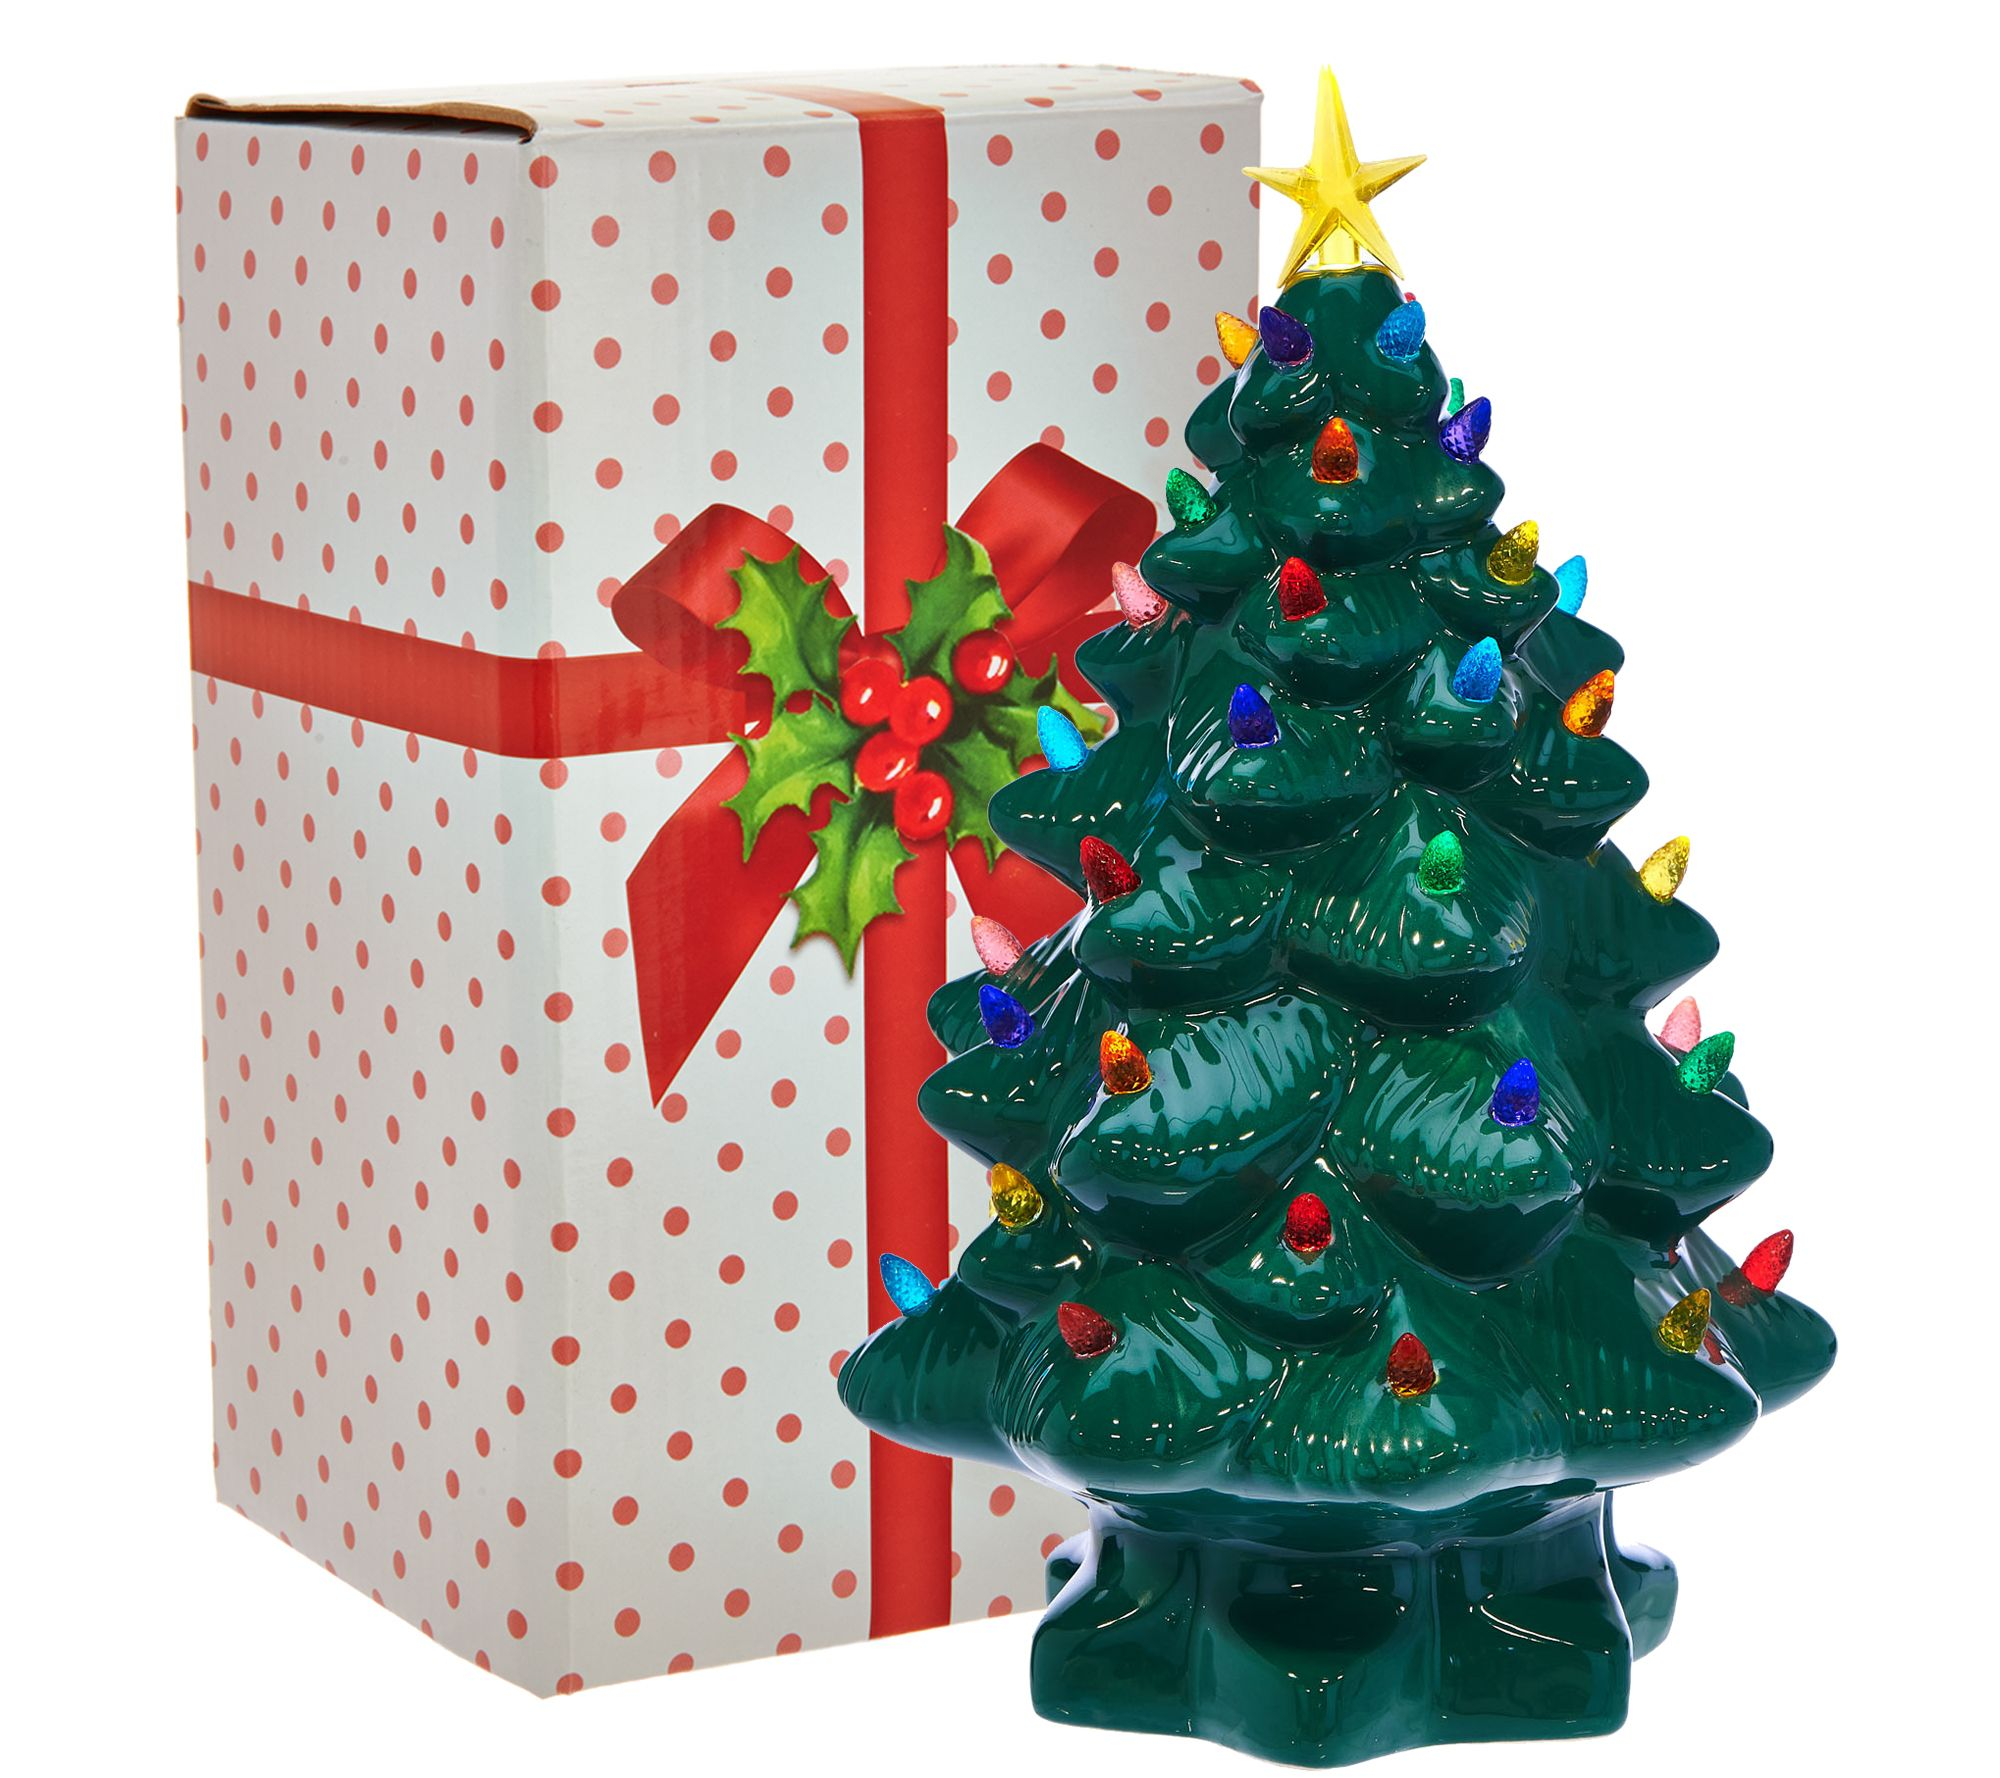 mr christmas 14 nostalgic tabletop tree w super bright led lights page 1 qvccom - Nostalgic Christmas Decorations